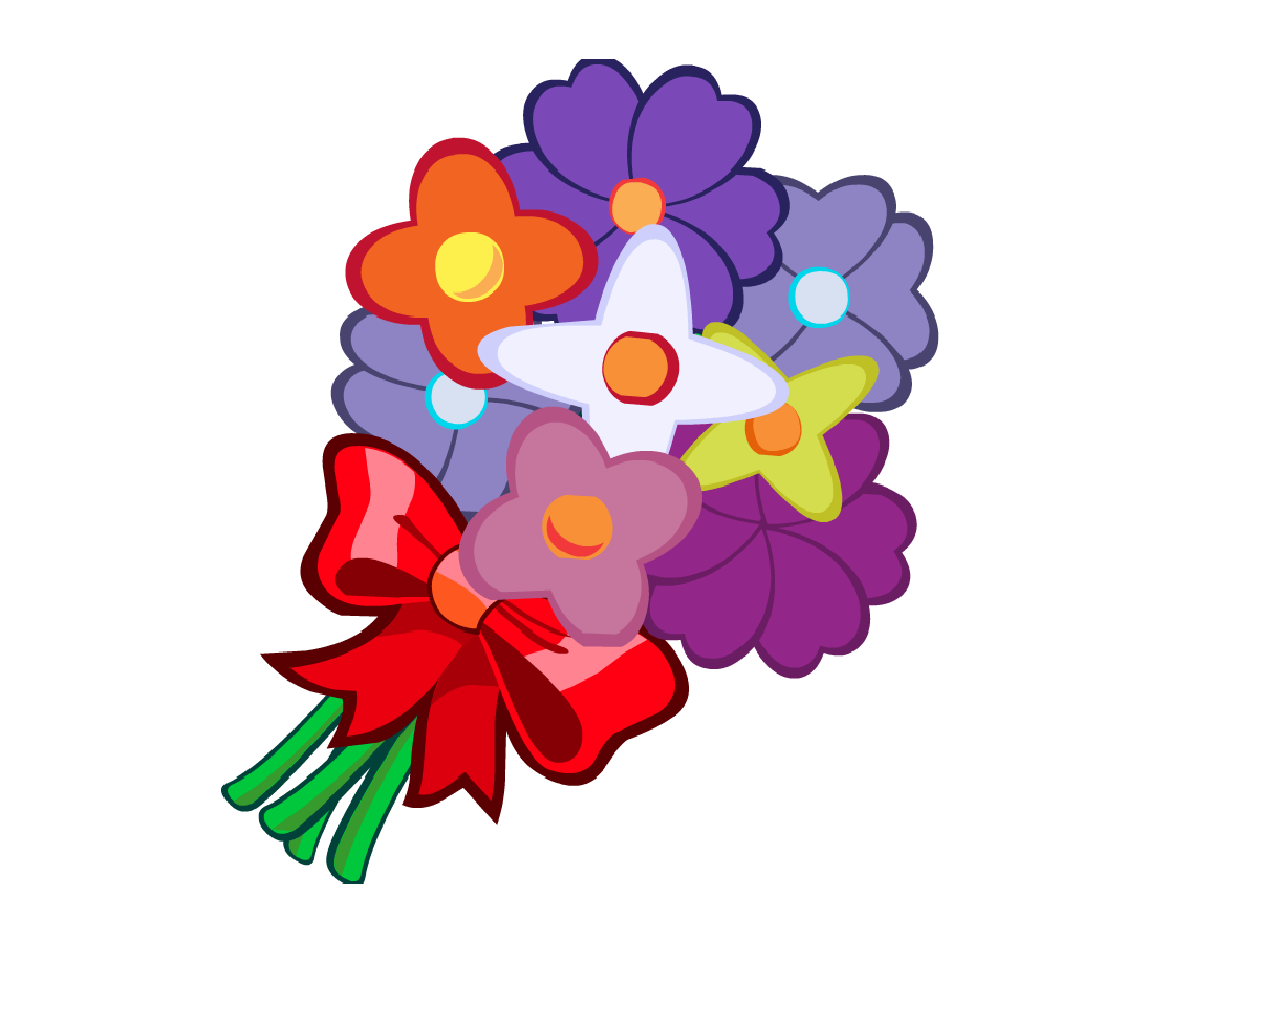 Flower bouquet wild ones wiki fandom powered by wikia flower bouquet izmirmasajfo